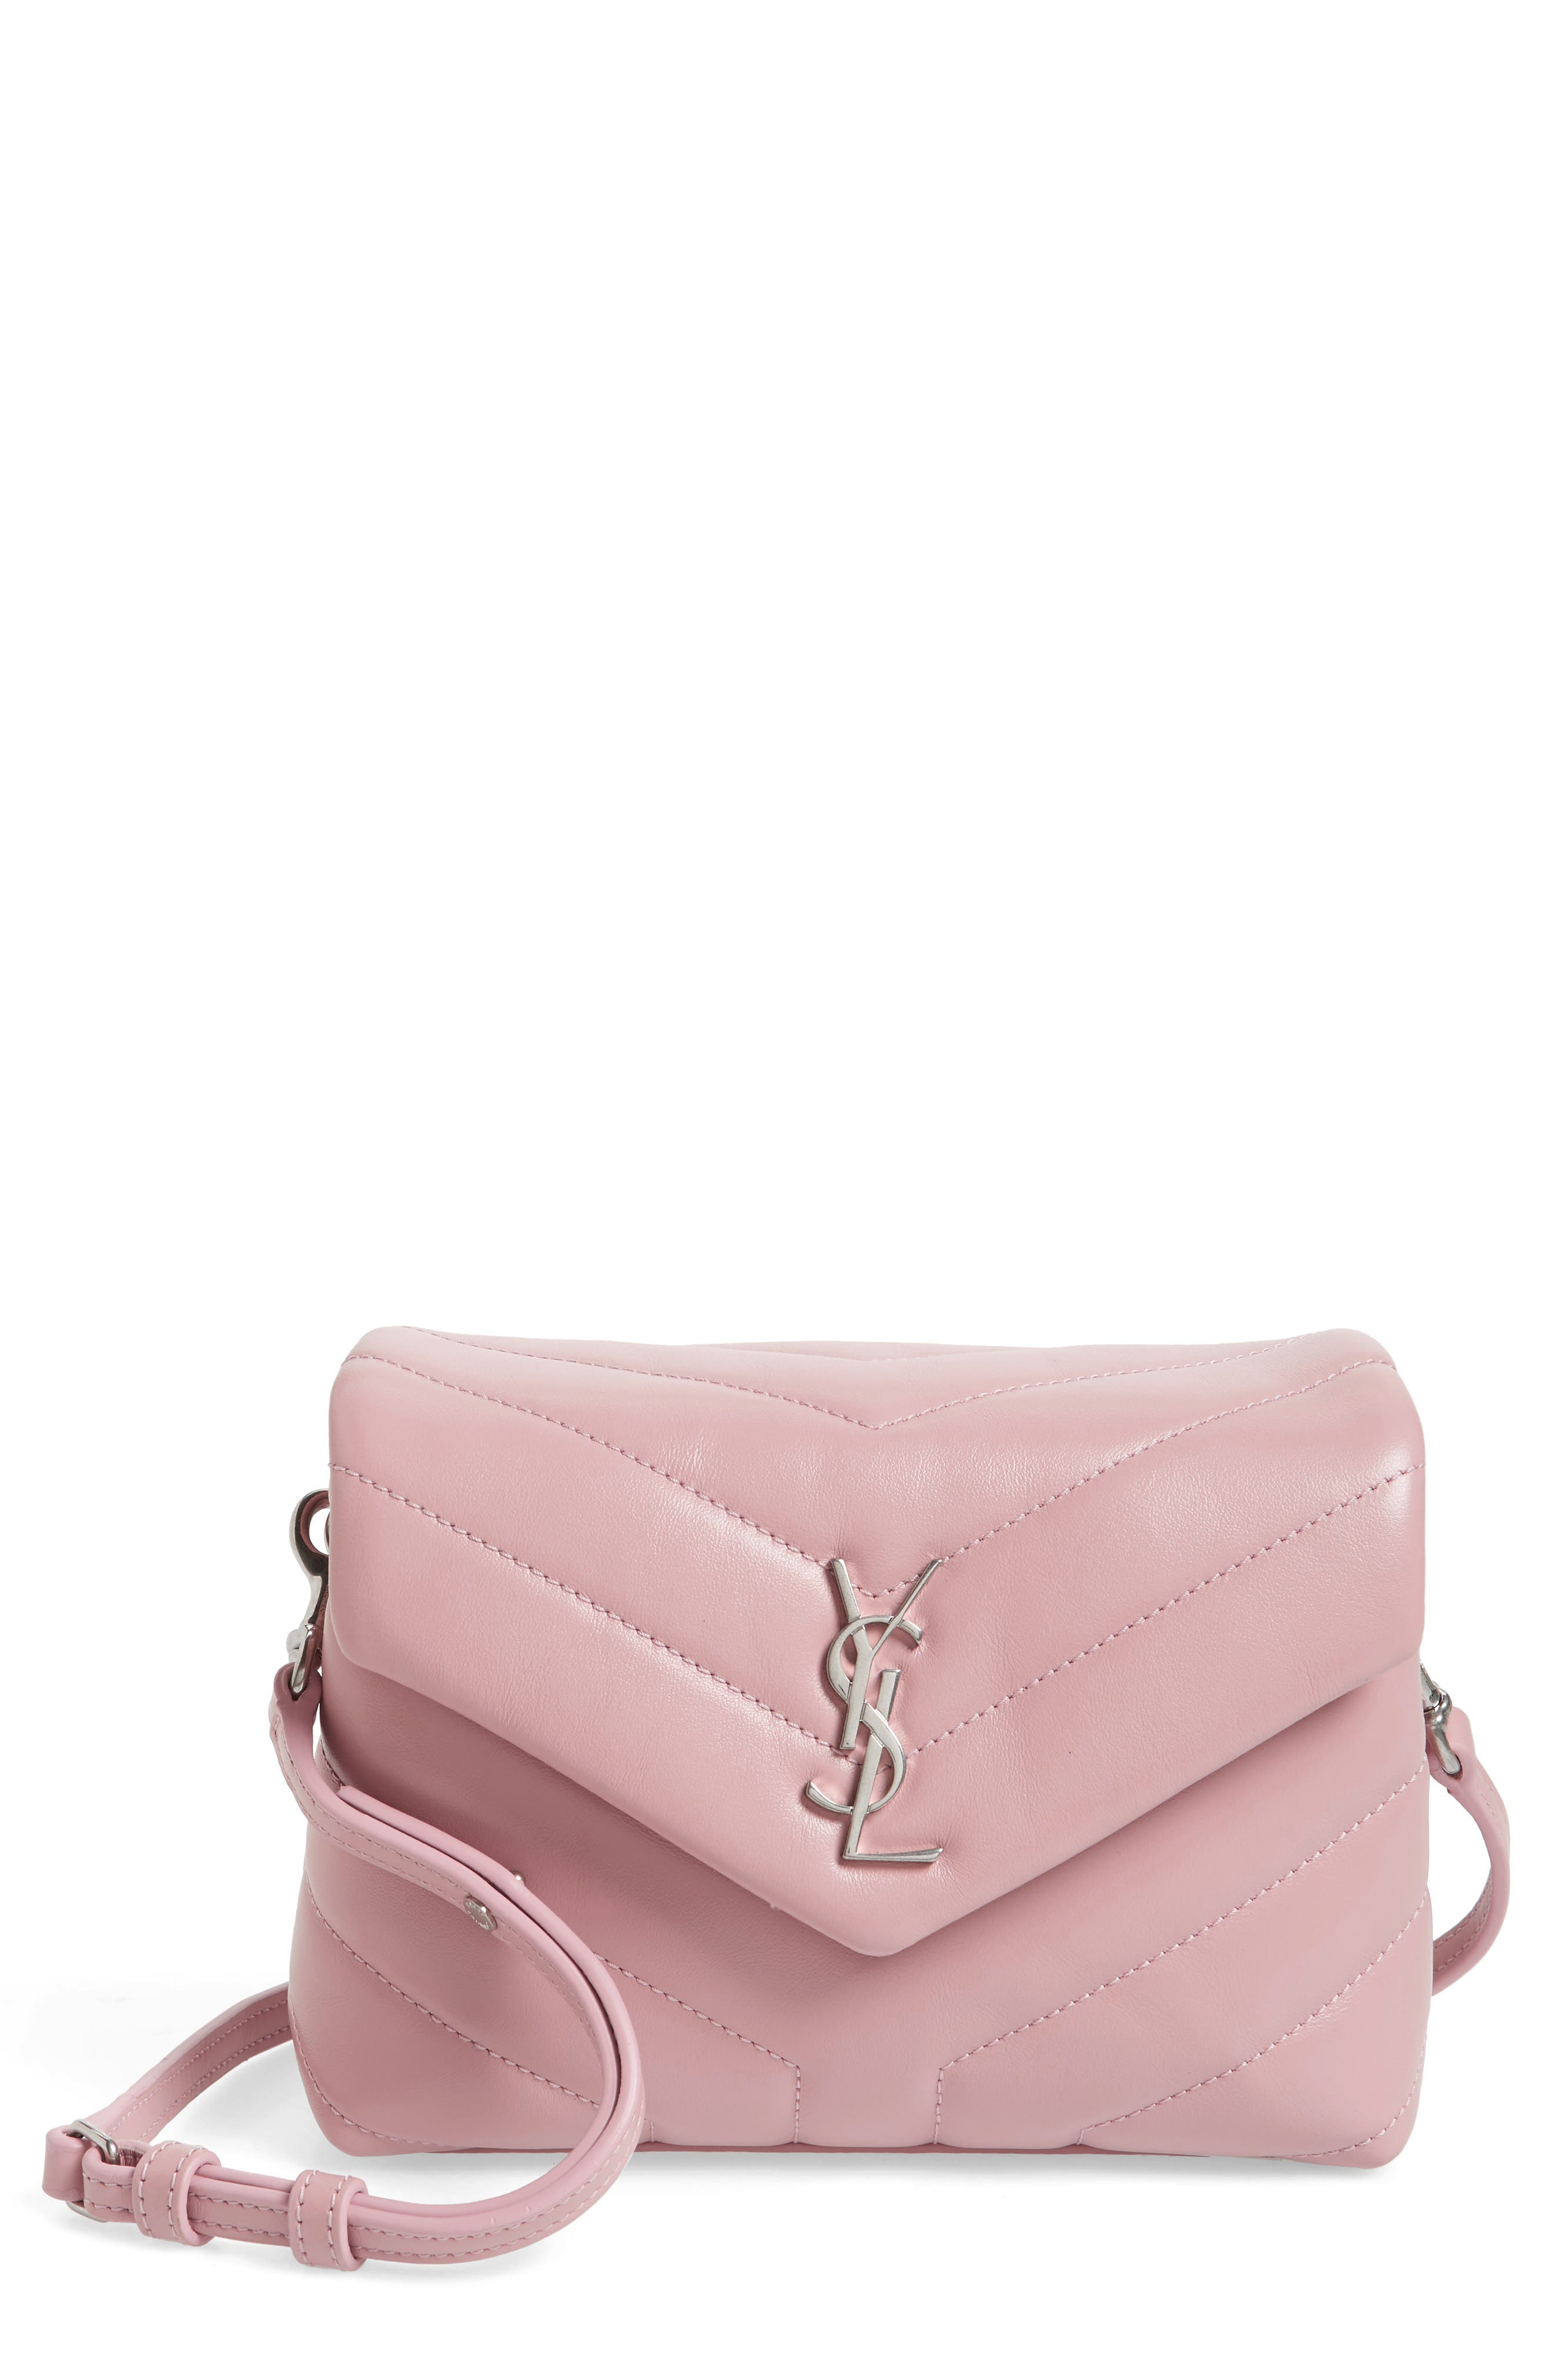 Toy LouLou Calfskin Leather Crossbody Bag,                         Main,                         color, Tender Pink